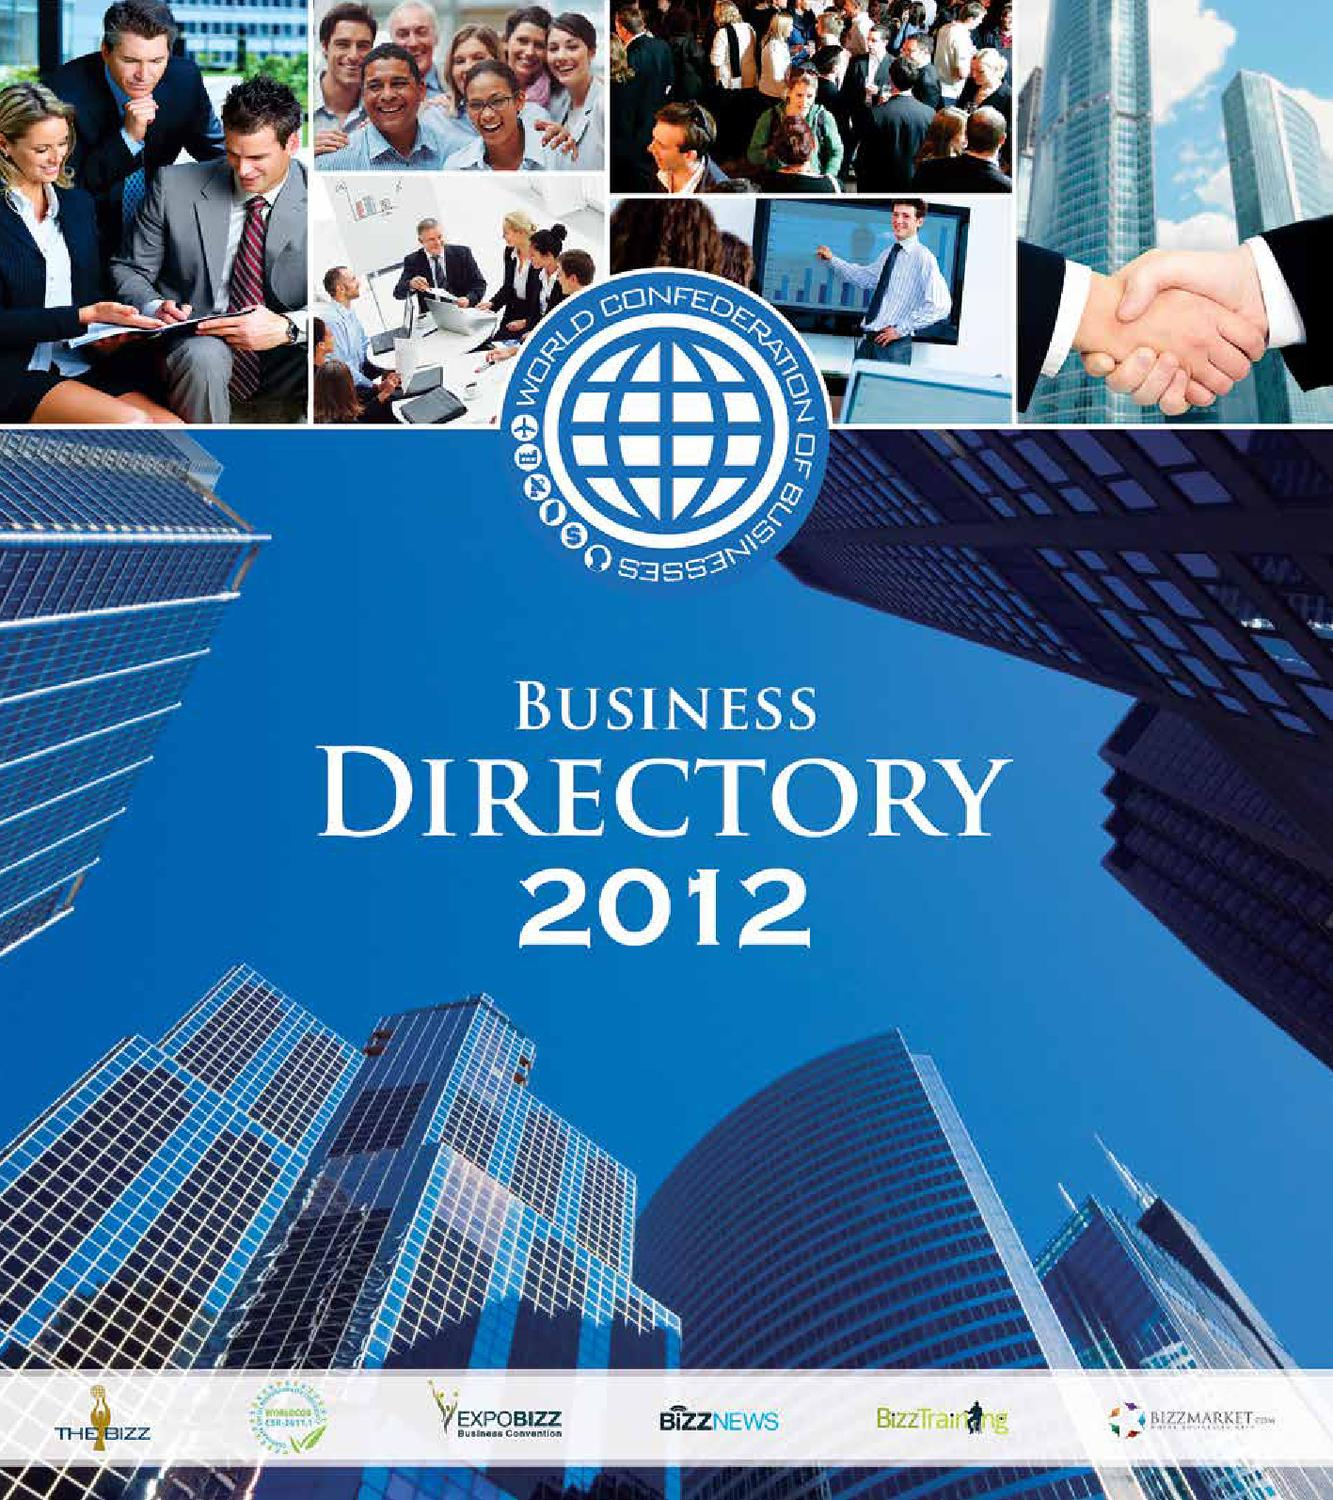 BUSINESS DIRECTORY 2012 by World Confederation of Businesses - issuu